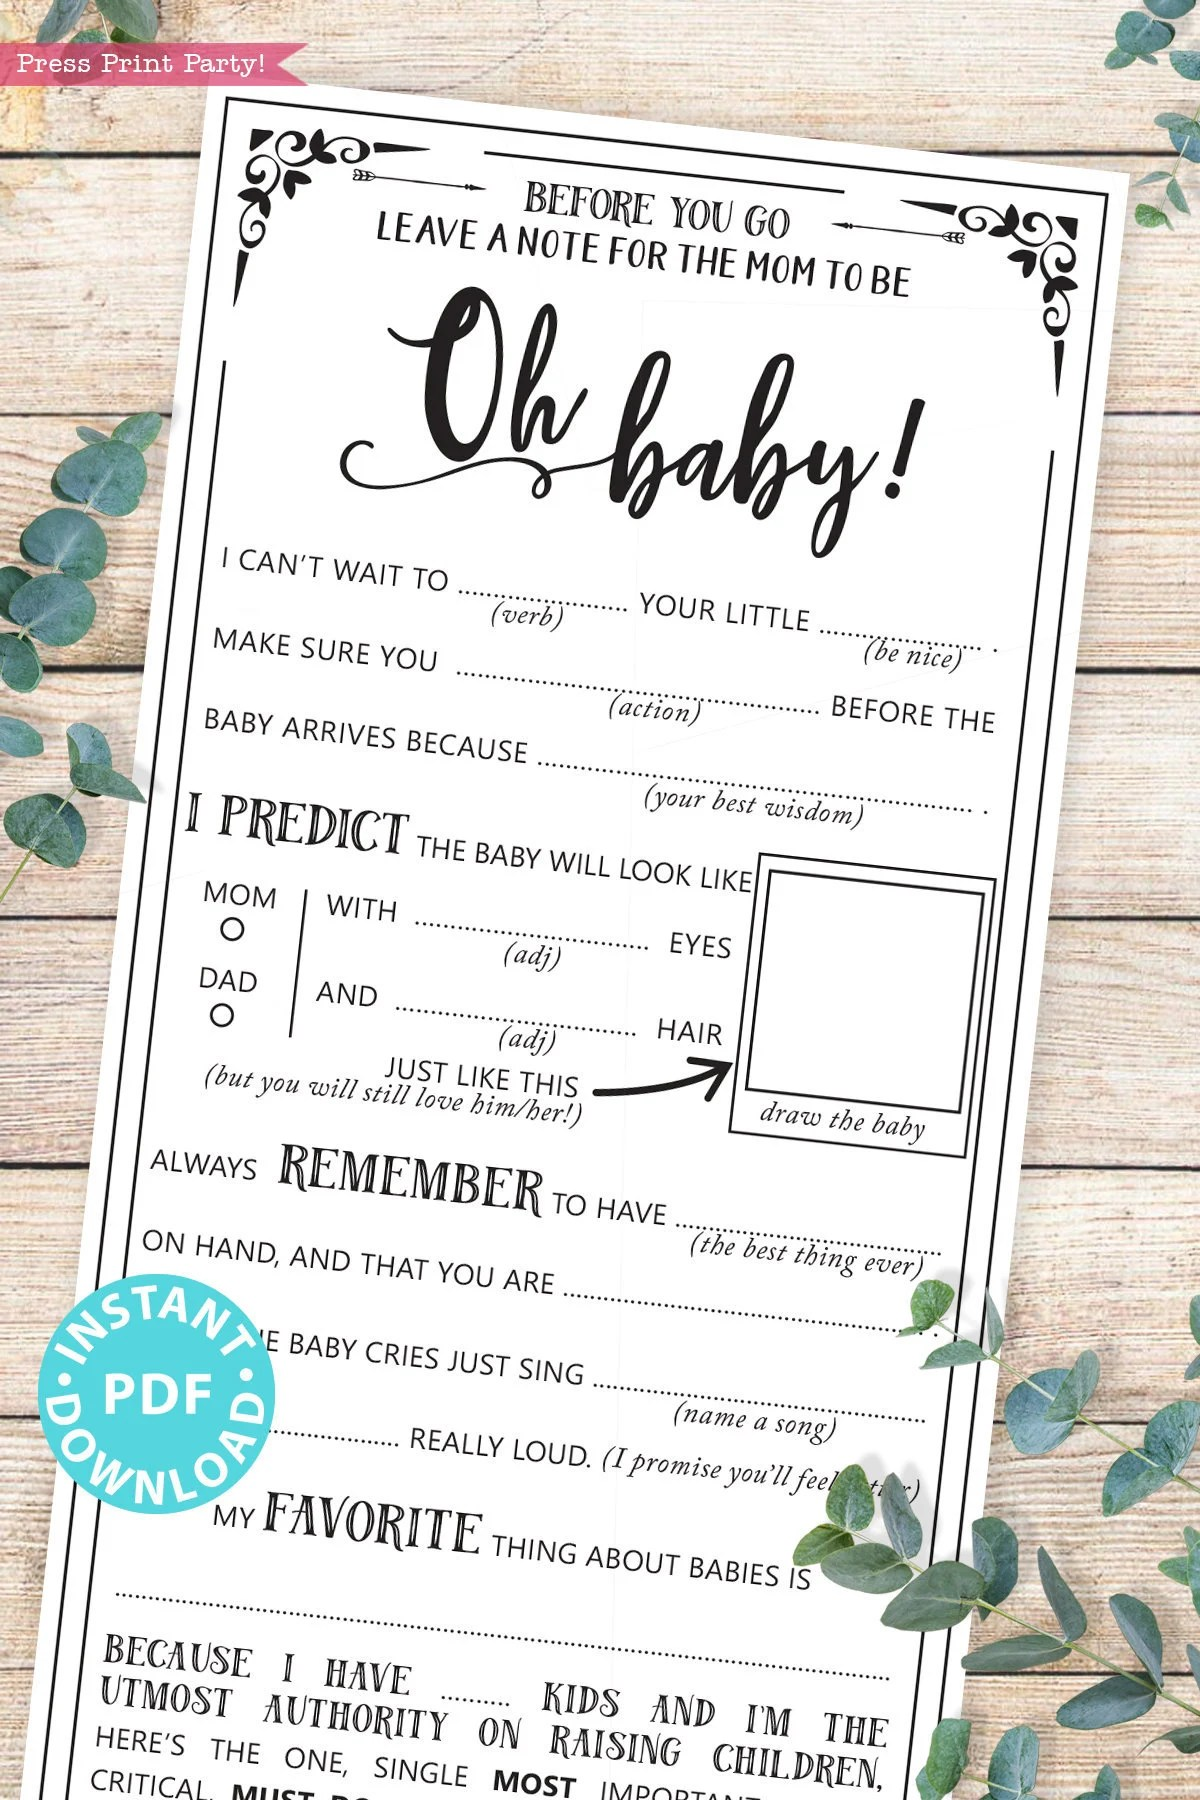 You Re The One Oh Baby : Advice, Shower, Printable, Game,, Funny, Libs,, Baby,, Guestbook, Wishes, Predictions,, INSTANT, DOWNLOAD, Press, Print, Party!, Catch, Party